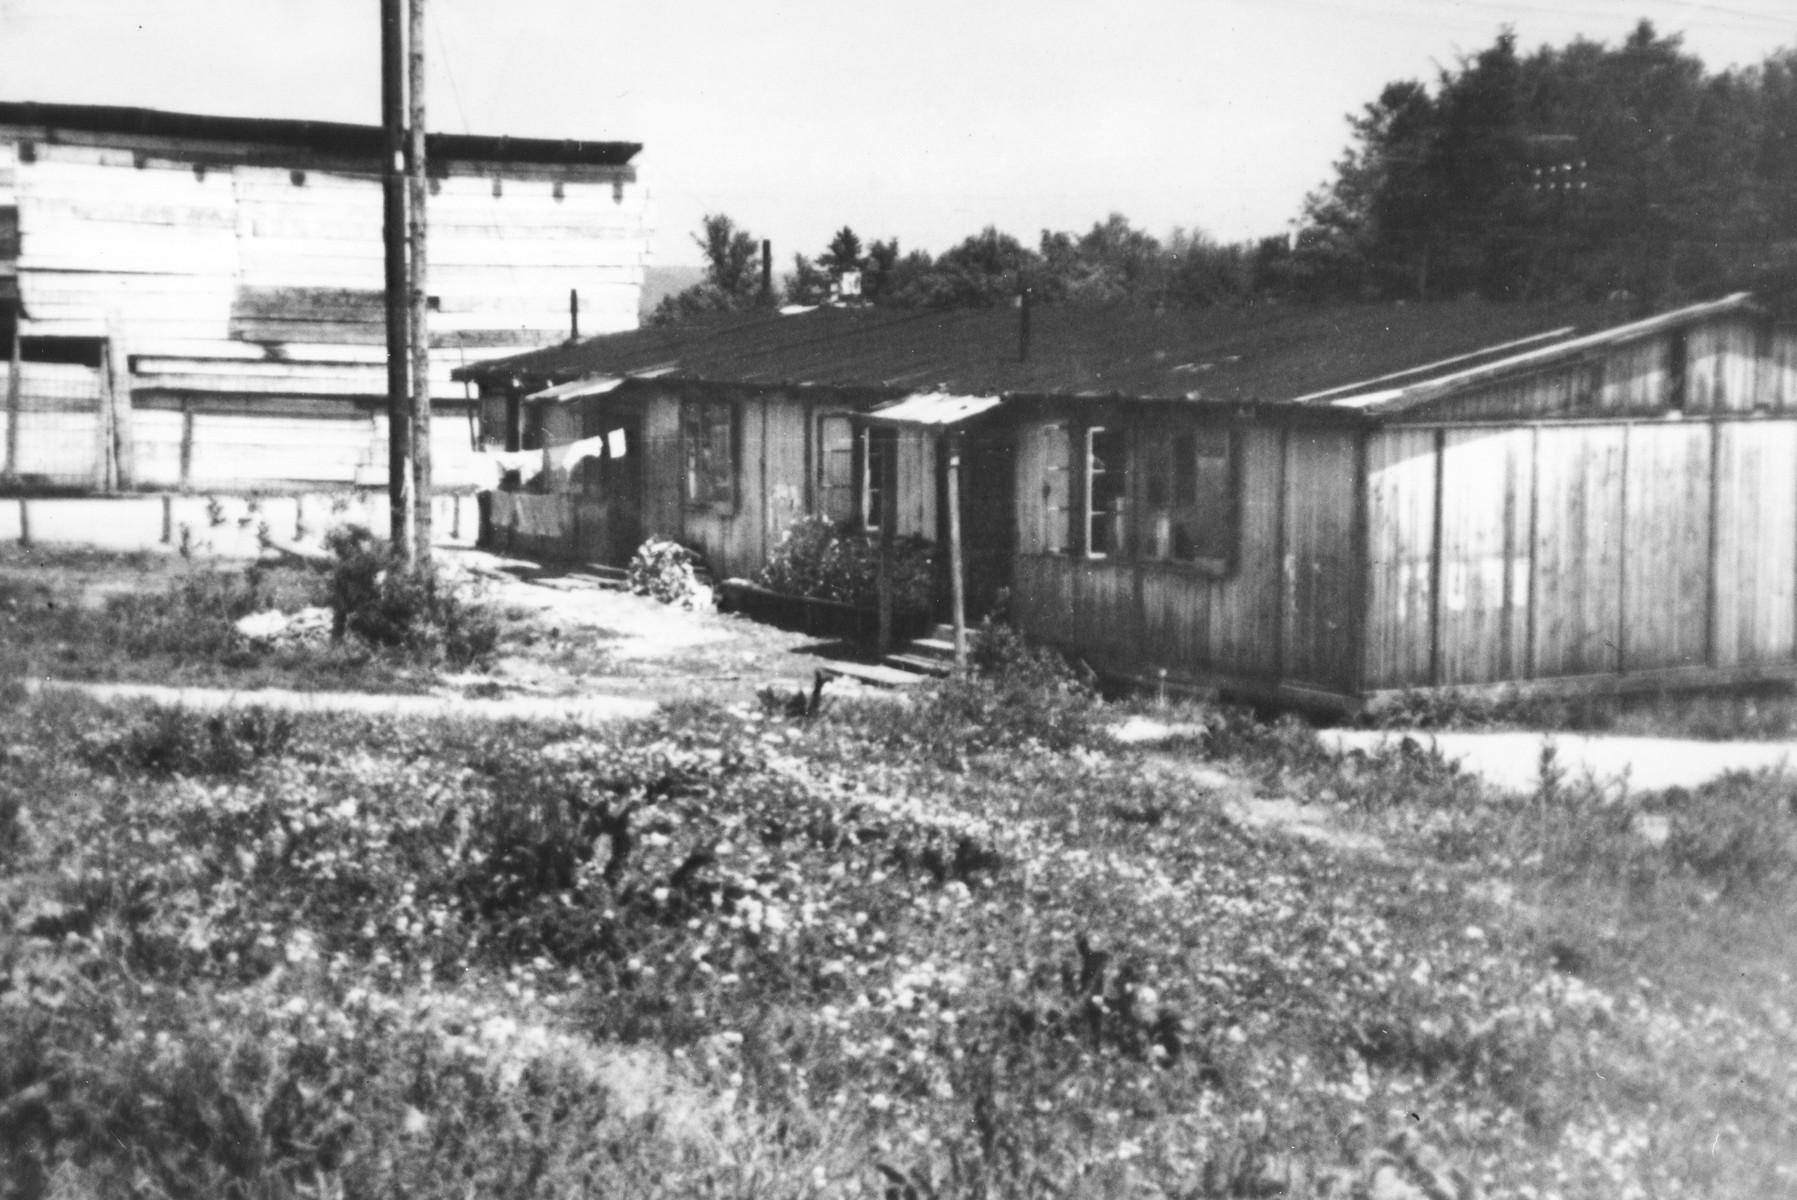 Exterior view of the barracks which served as living quarters in the Feldafing DP camp.